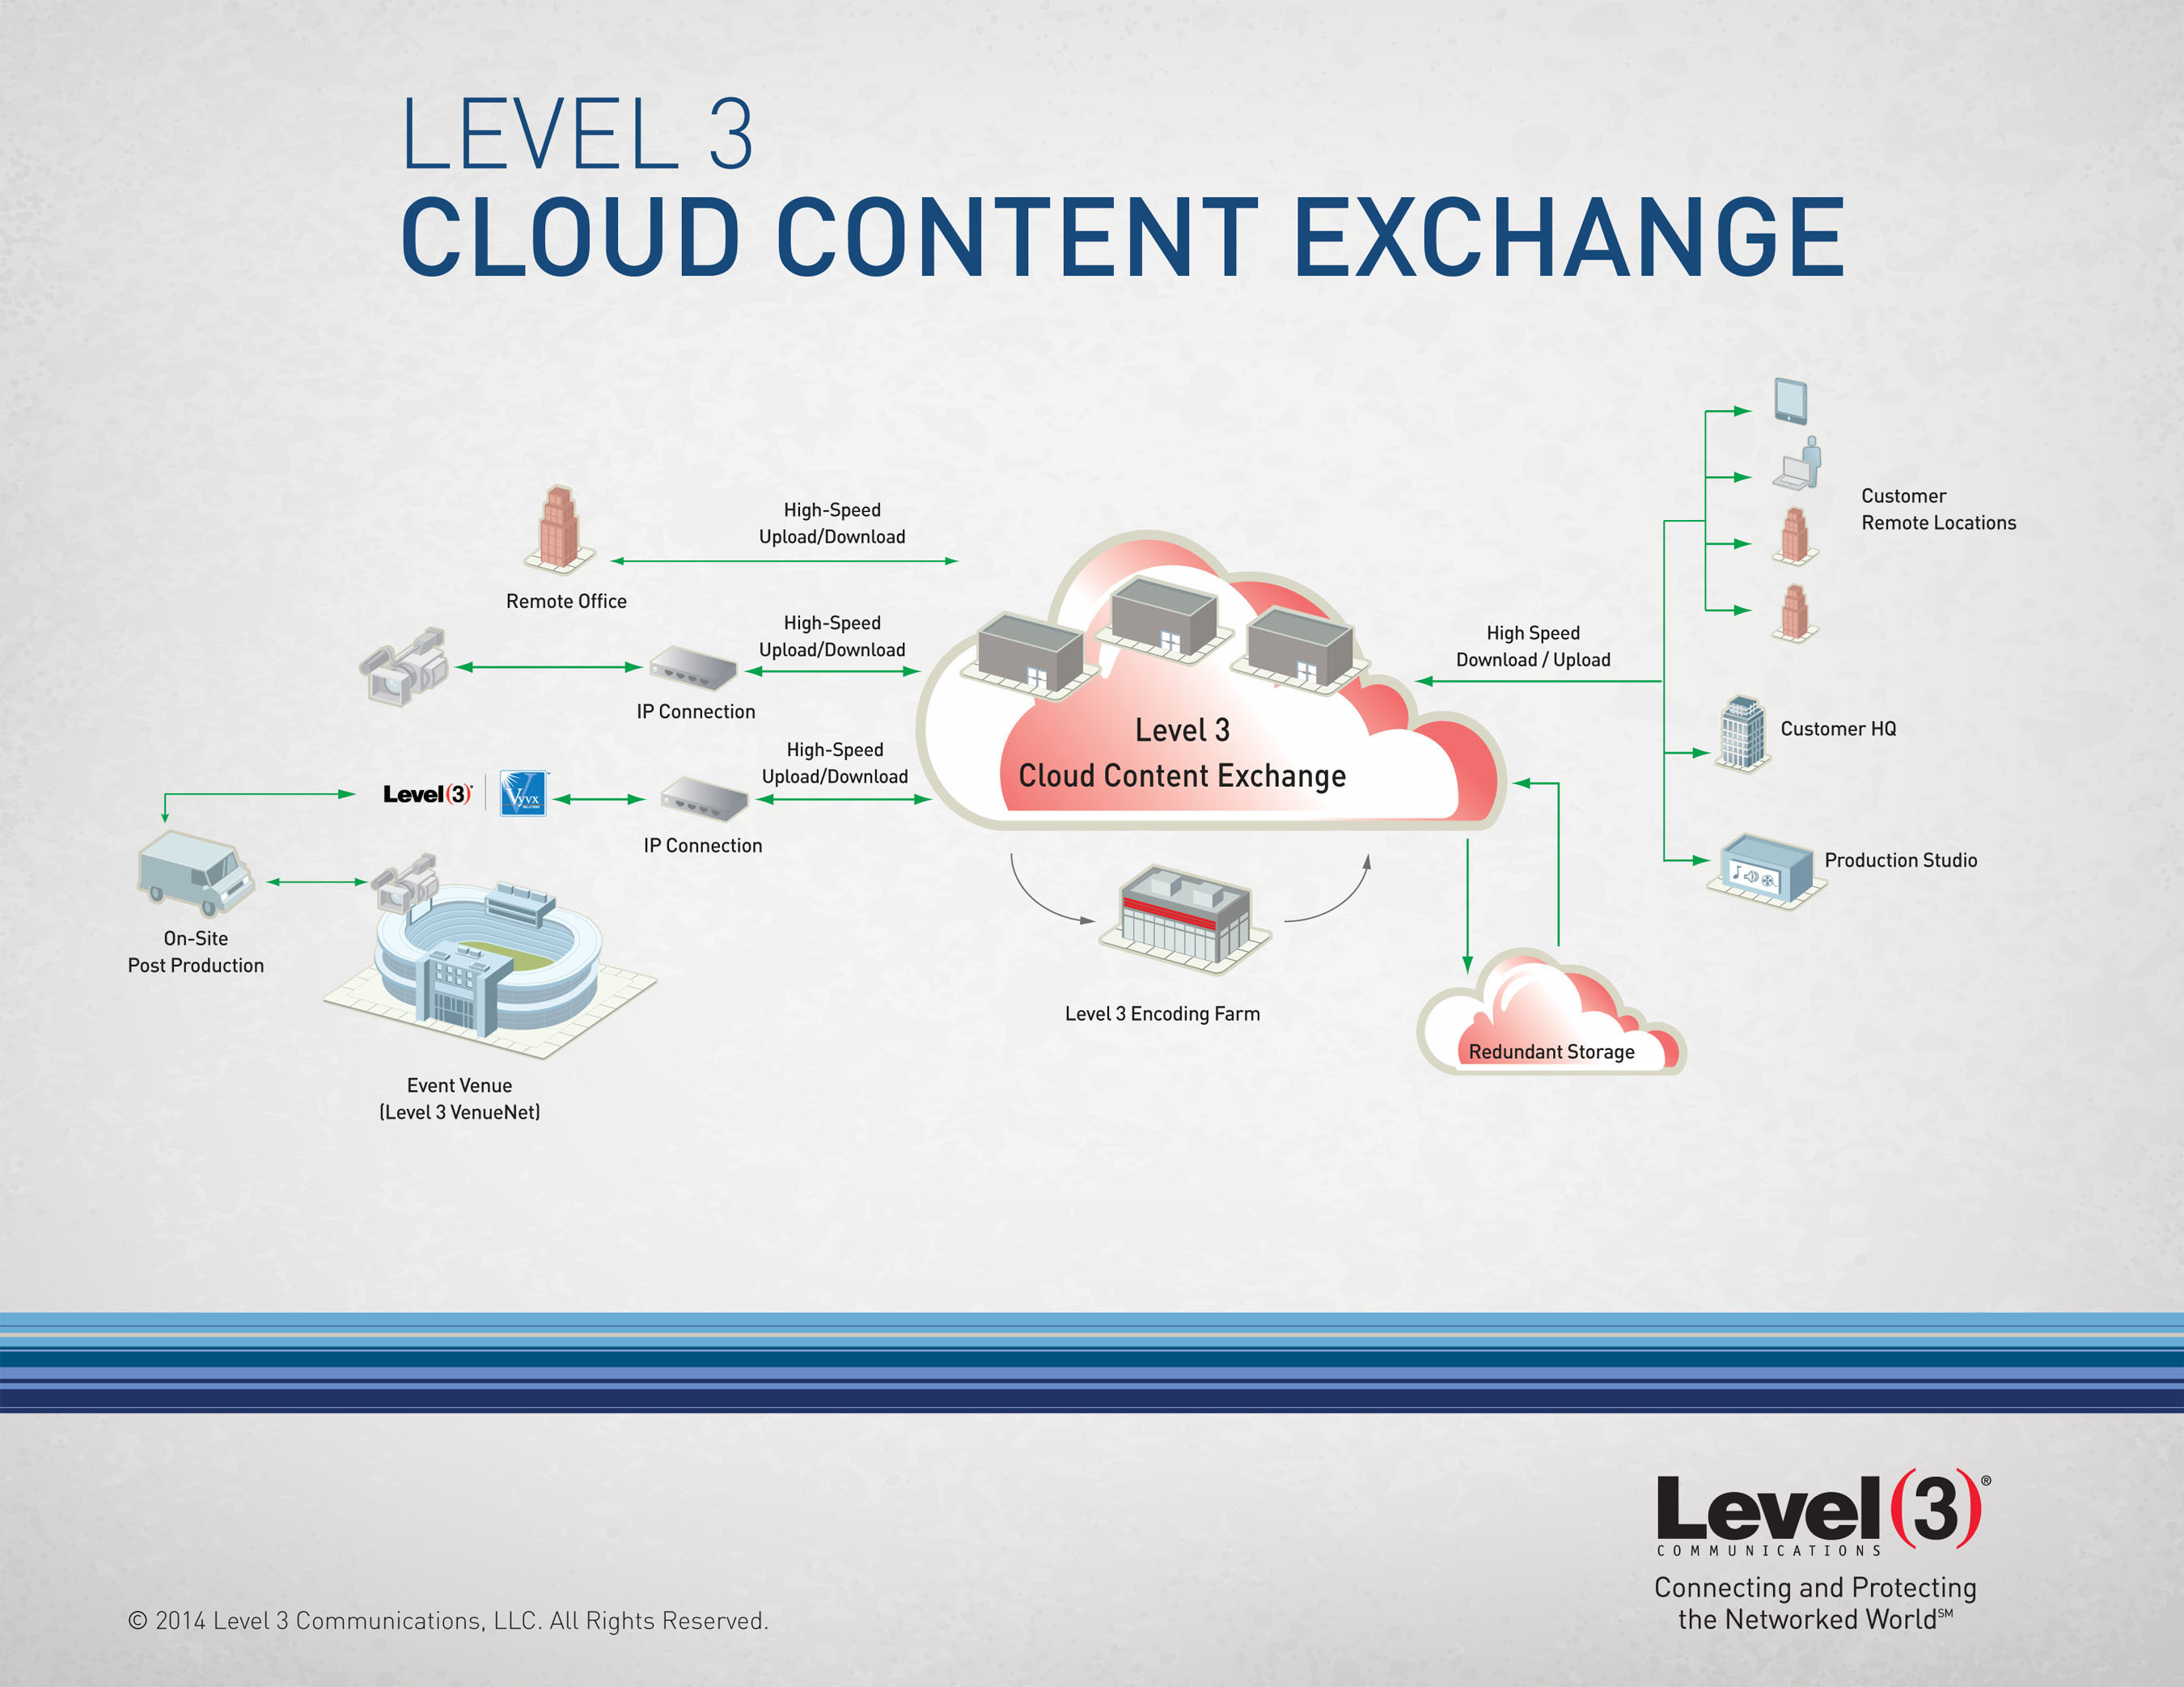 Increasing Demand to Improve Transfer of Large Media Files Drives Development of Level 3 Cloud Content Exchange.  (PRNewsFoto/Level 3 Communications, Inc.)